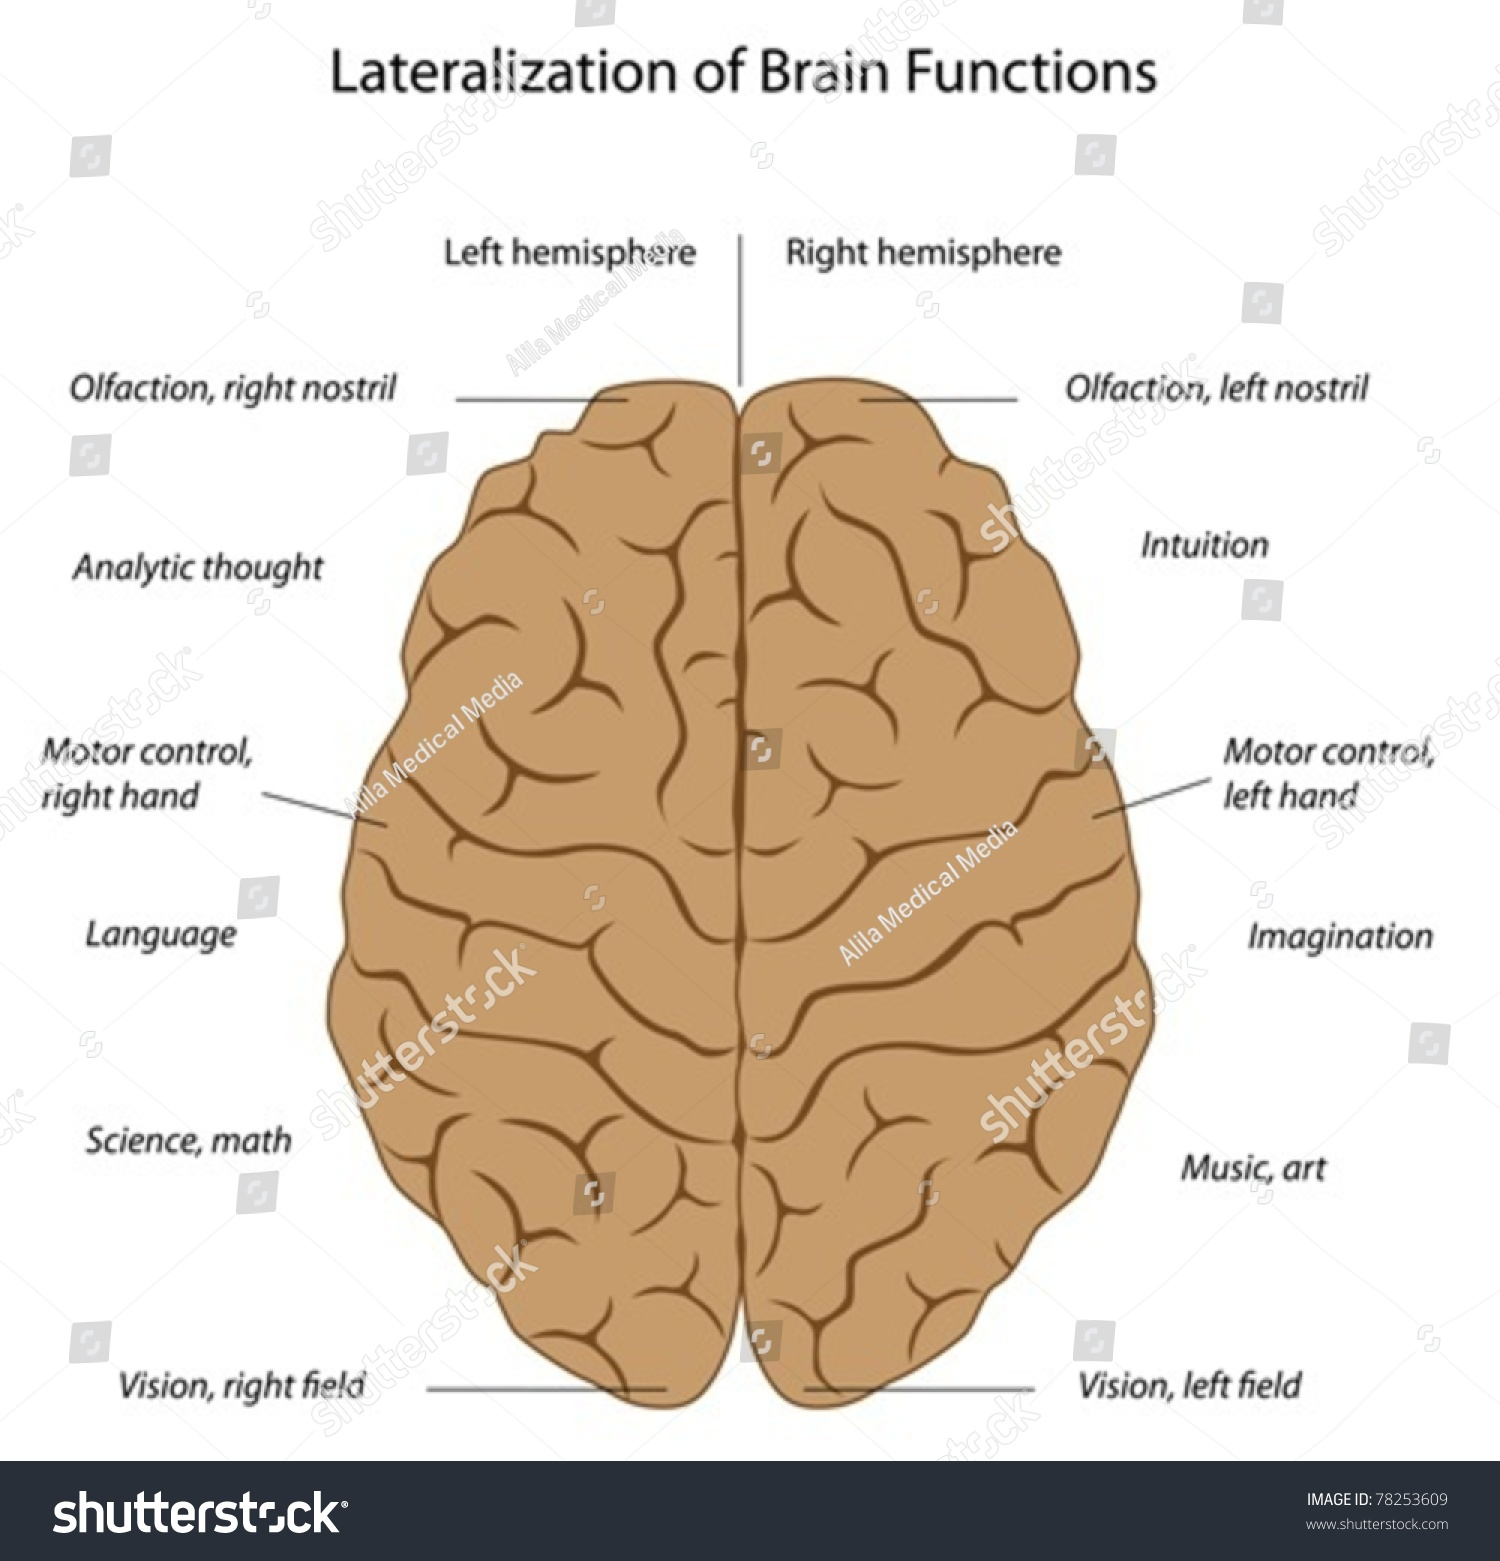 Functions Left Right Hemispheres Brain Stock Vector 78253609 ...